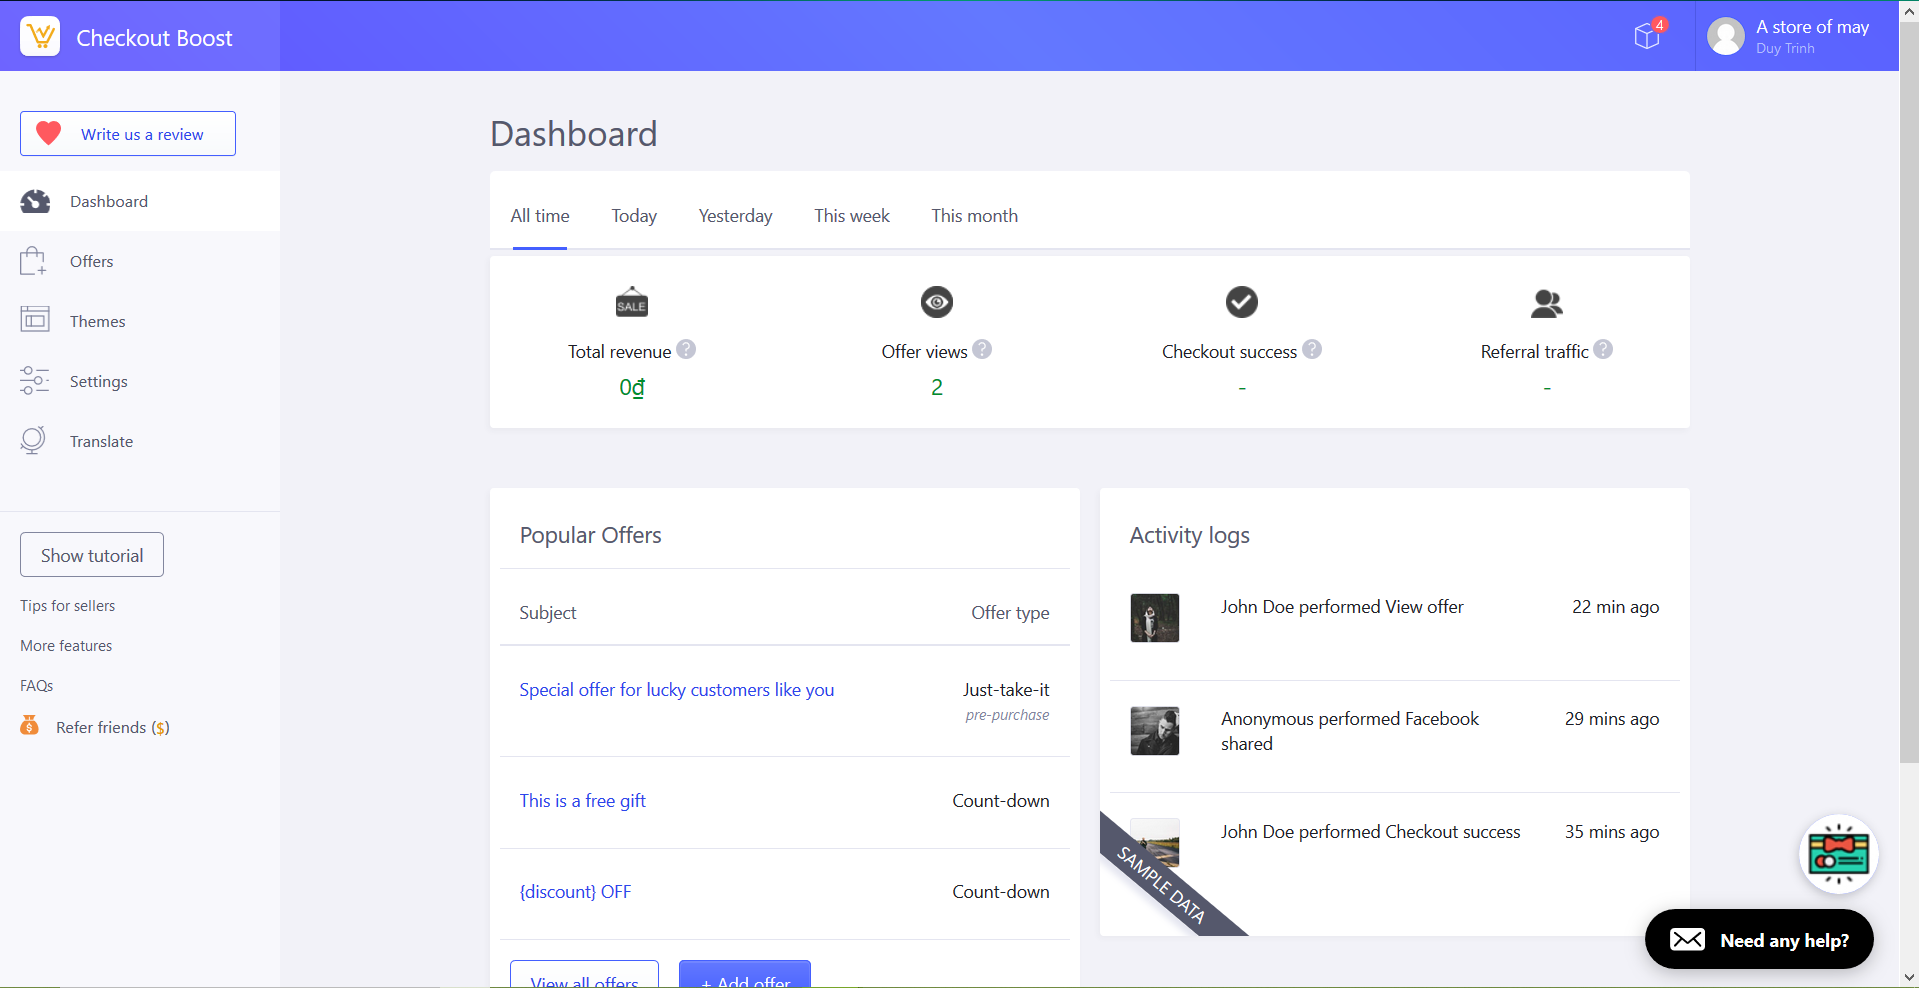 Checkout Boost - Dashboard